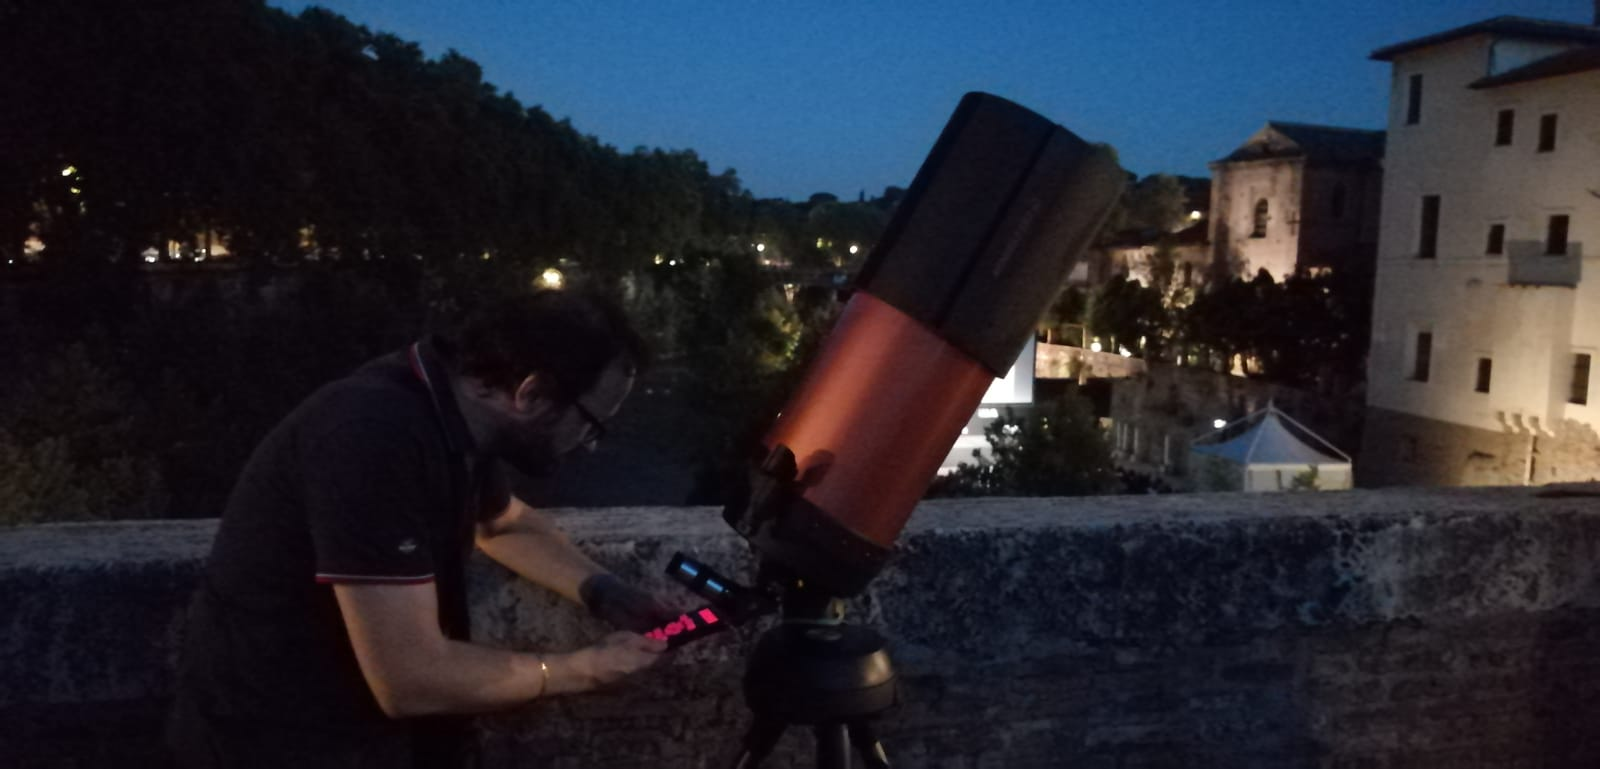 Preparing the telescope